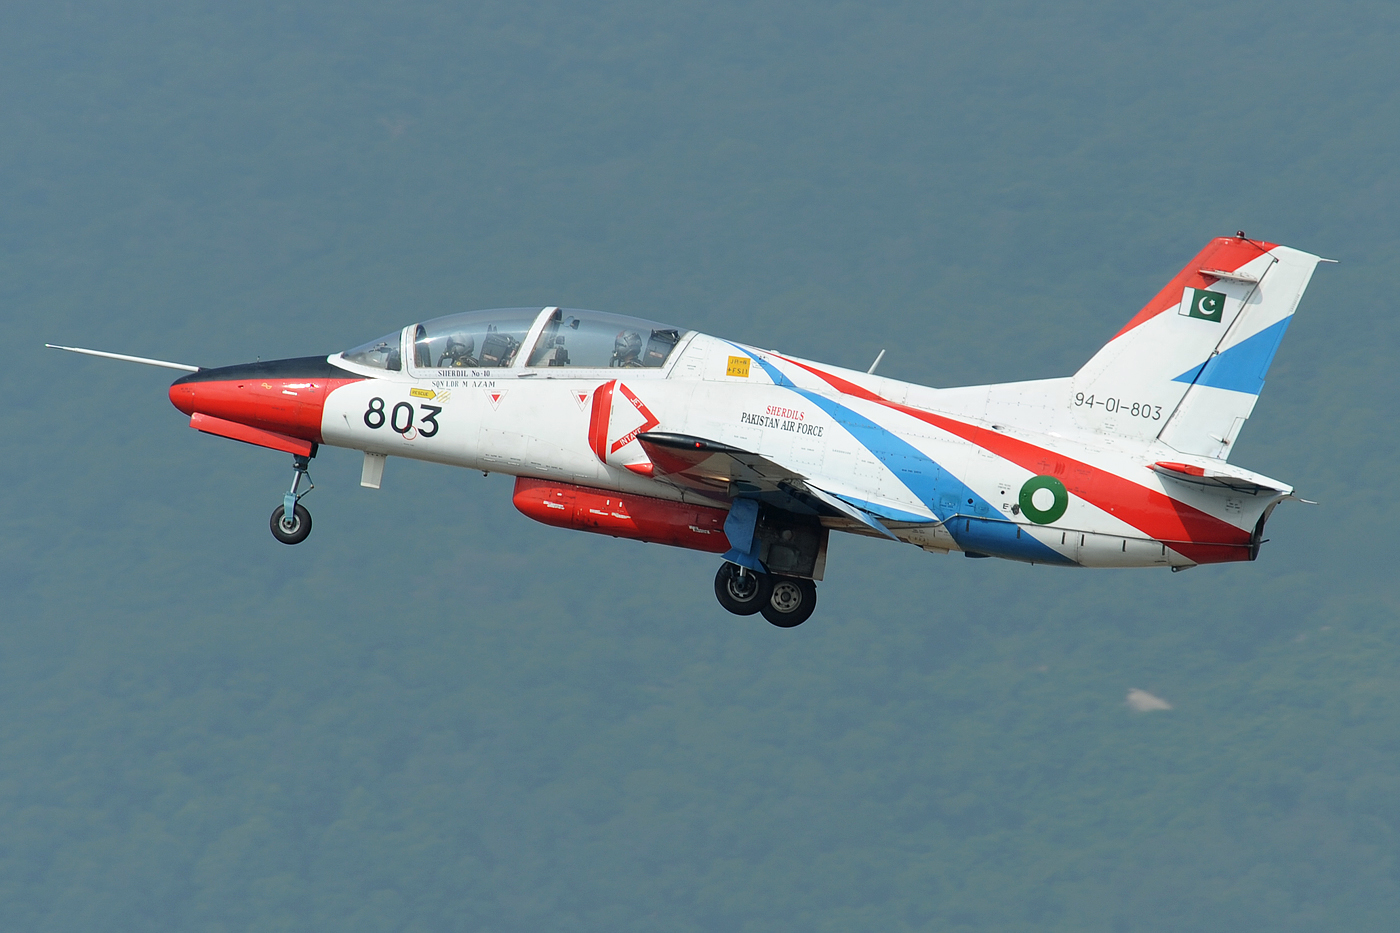 A Chinese-built K-8 jet trainer at the Zhuzhai Airshow in 2010. Photo via Wikipedia